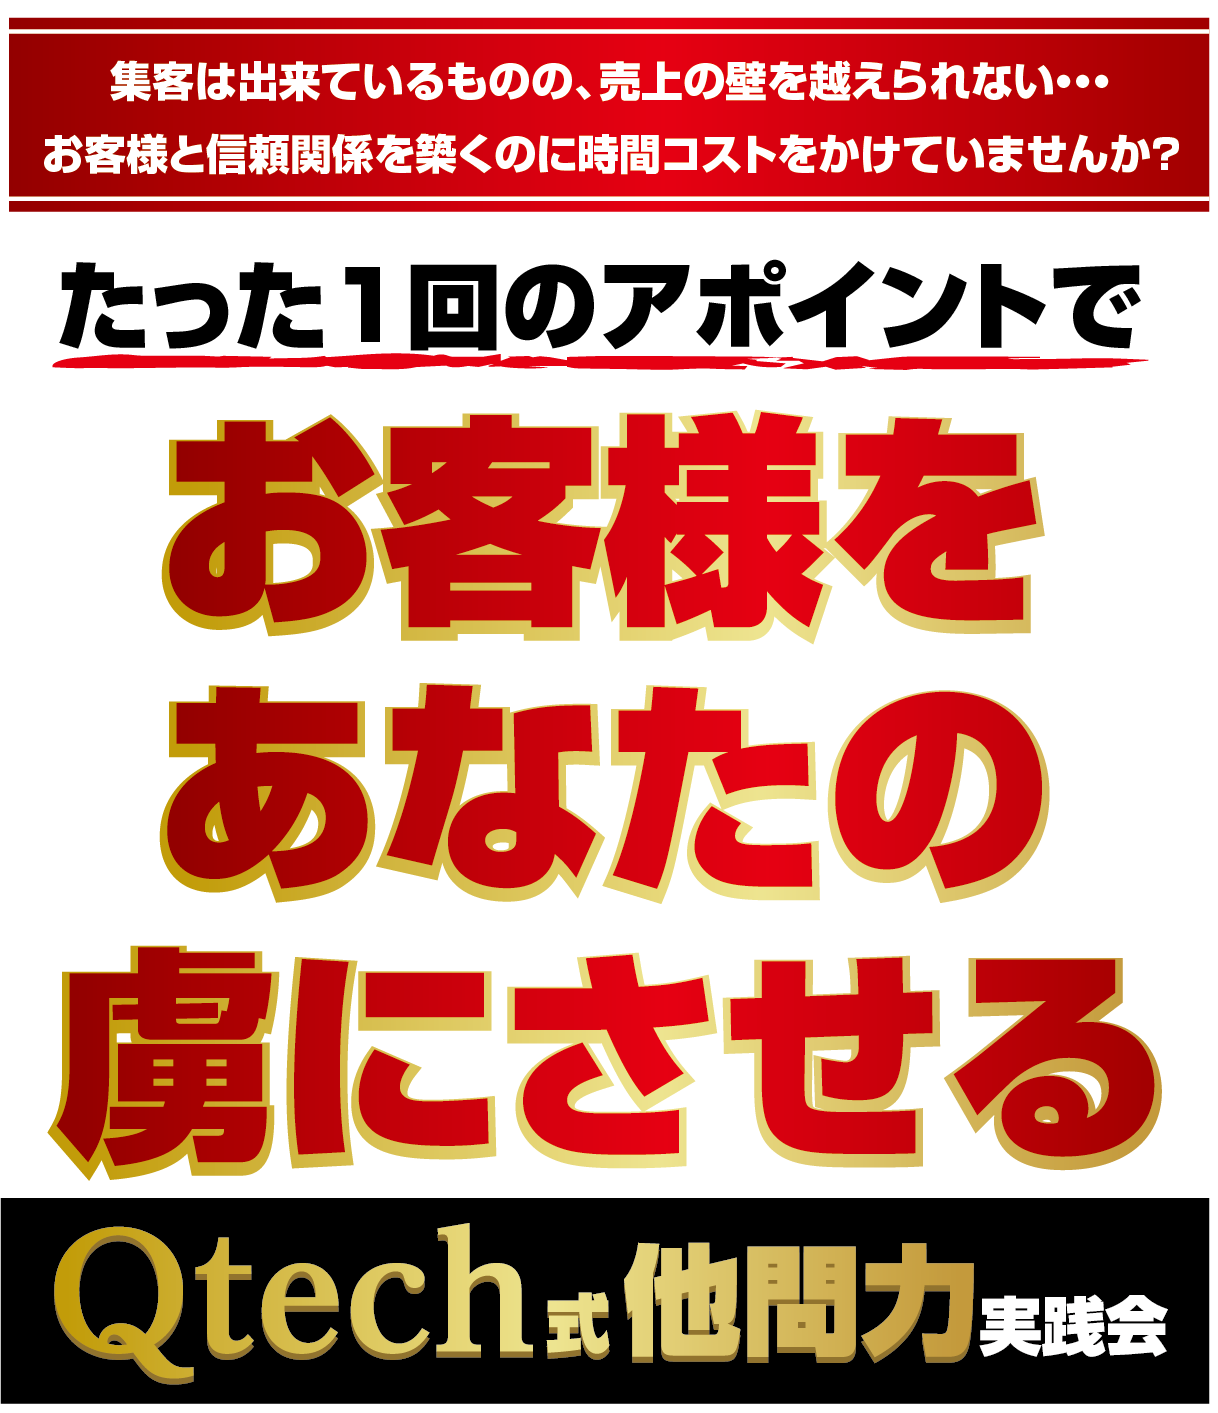 Qtech実践会